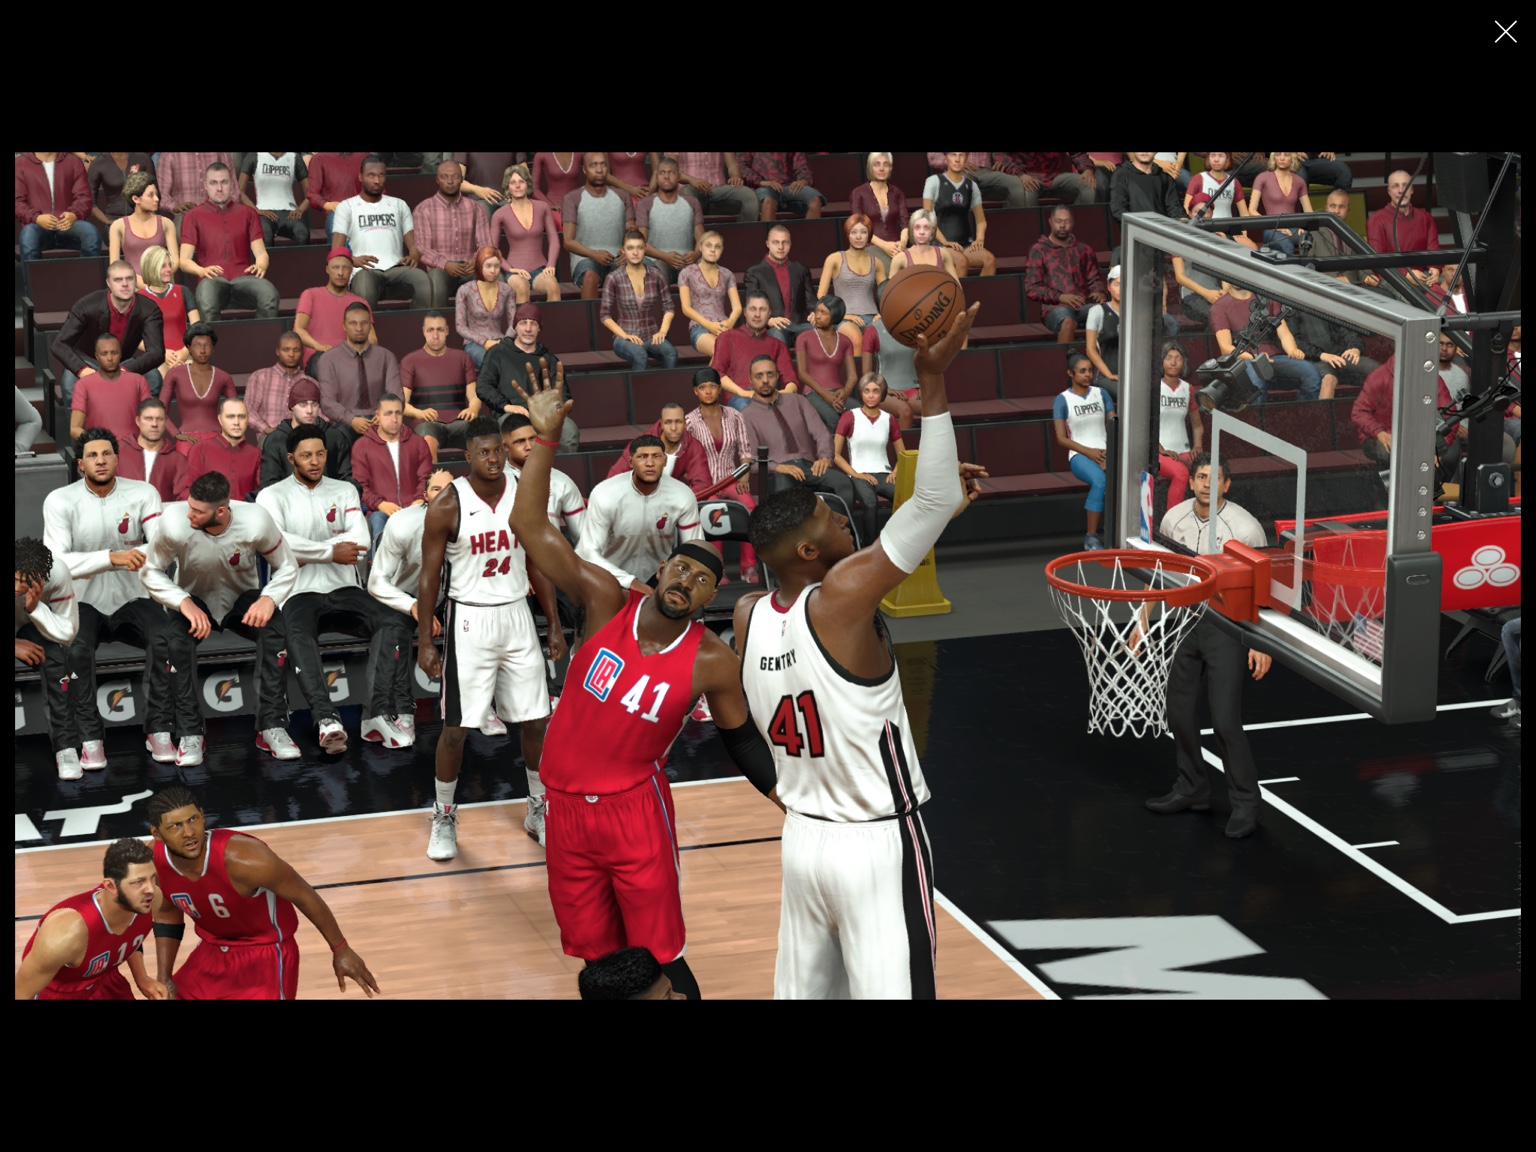 Miami heat lebron jamess vs golden state warriors nba2k17 miami - Career Averages Of 24 Points 13 Rebounds And 2 Blocks Including Back To Back Years Averaging 31 17 2 But Get This He S A 7 7 Center With A 97 Vertical